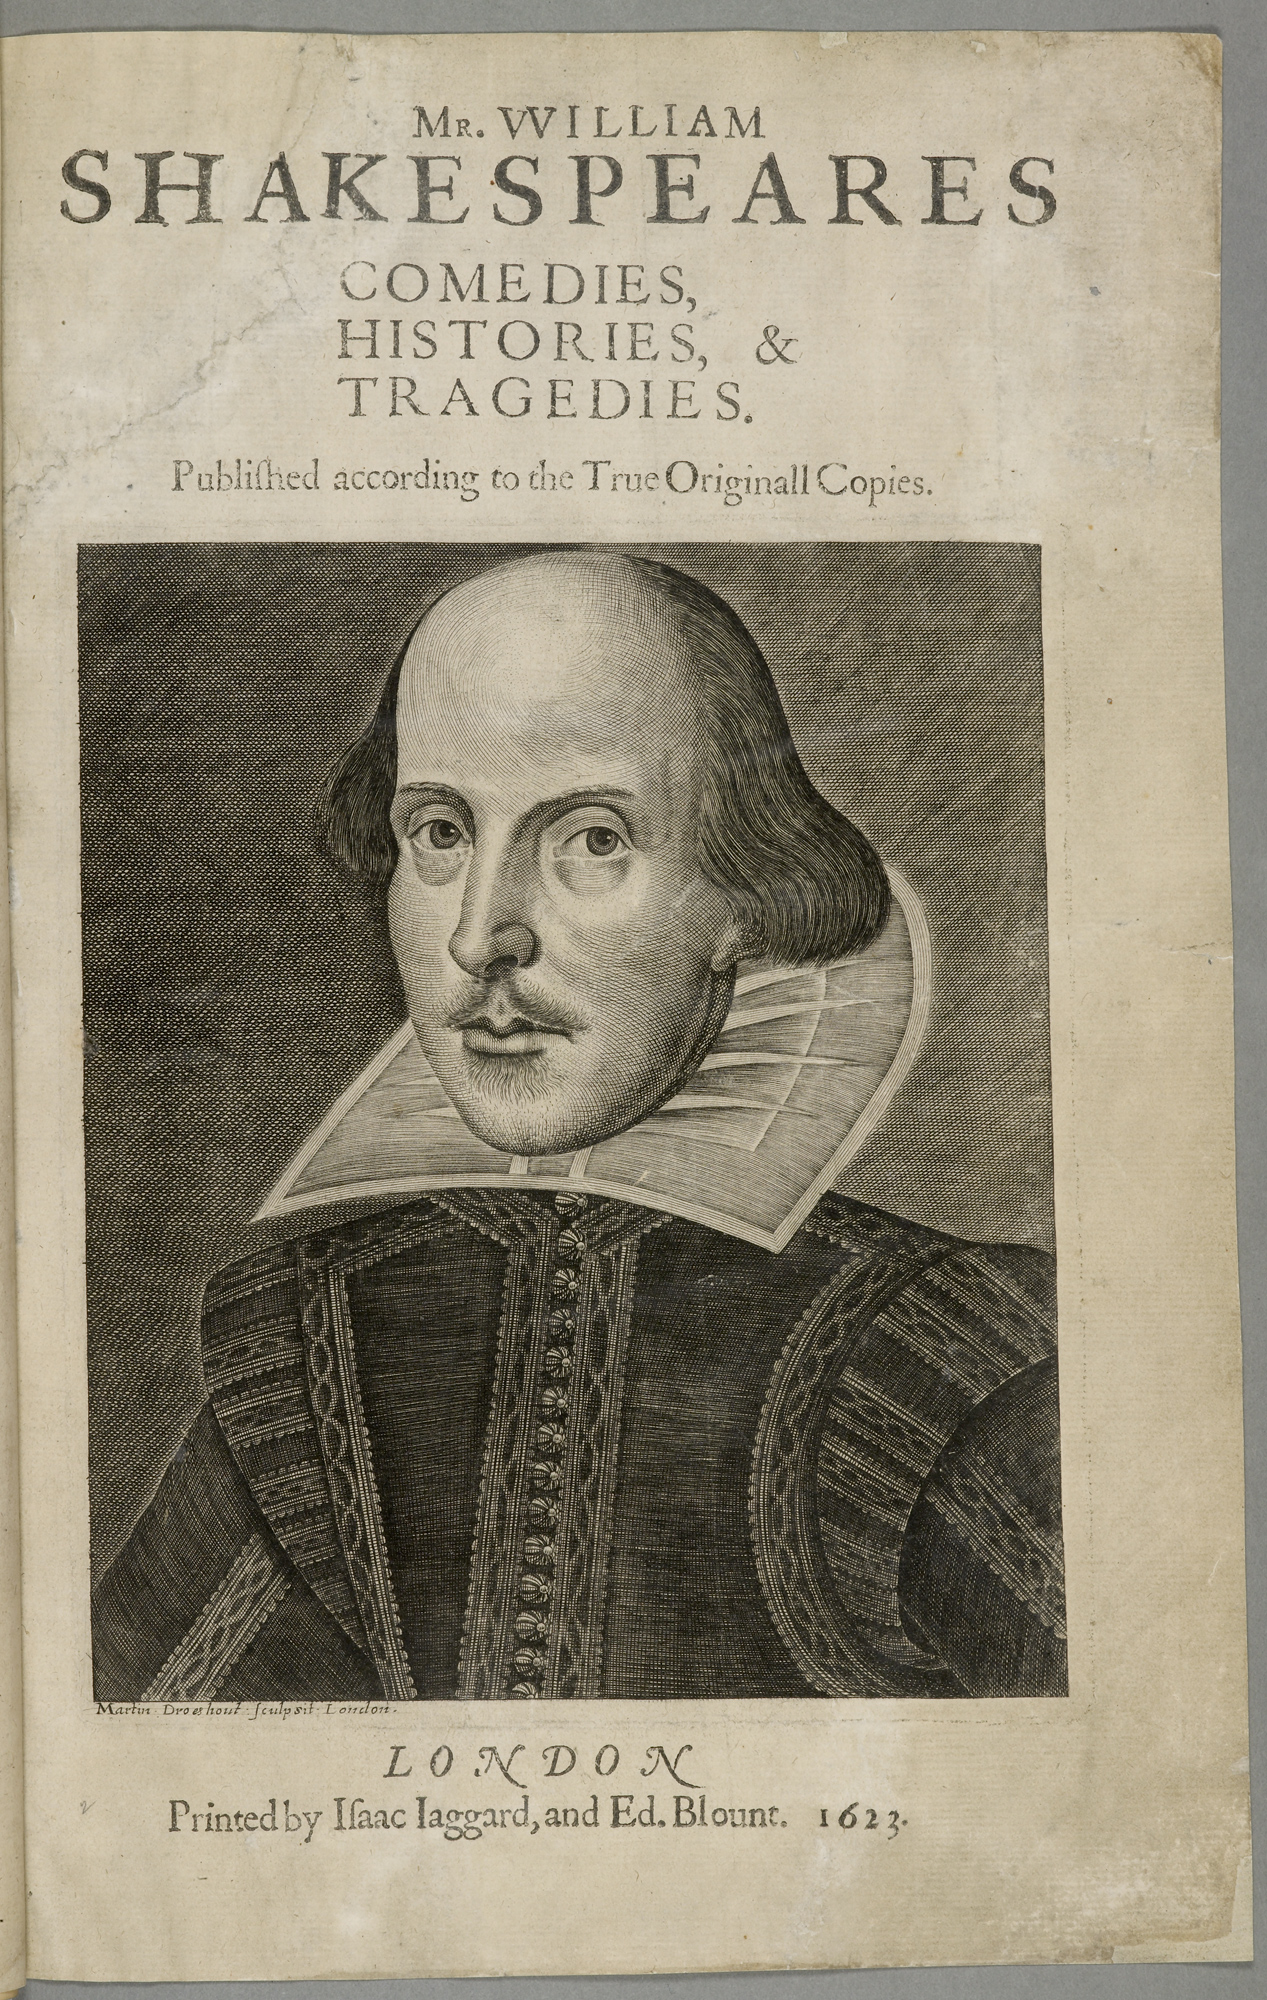 title page of the first Folio edition of Shakespeare's plays, 1623